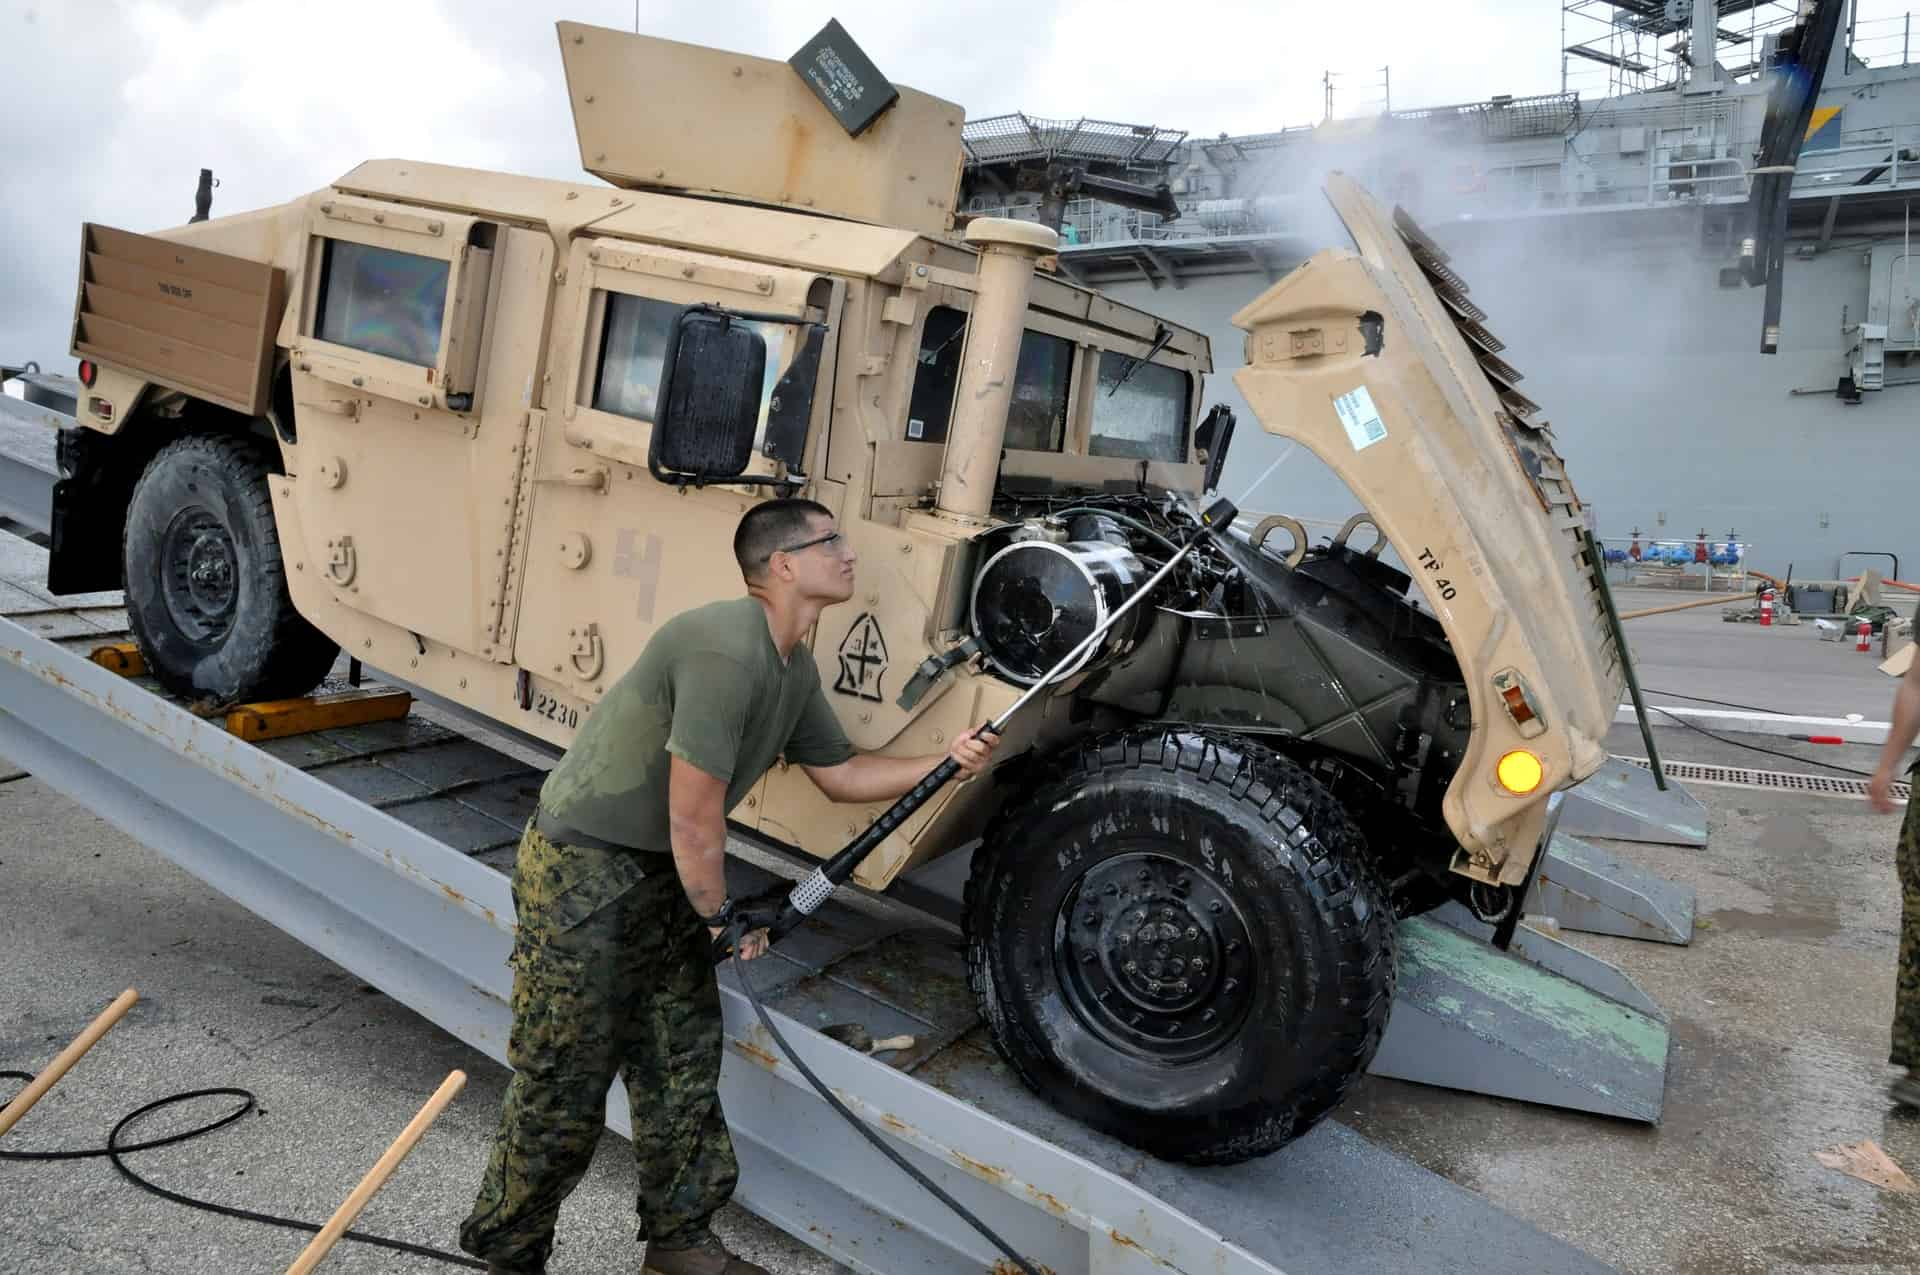 MILITARY GUY cleaning a military vehicle using a pressure washer